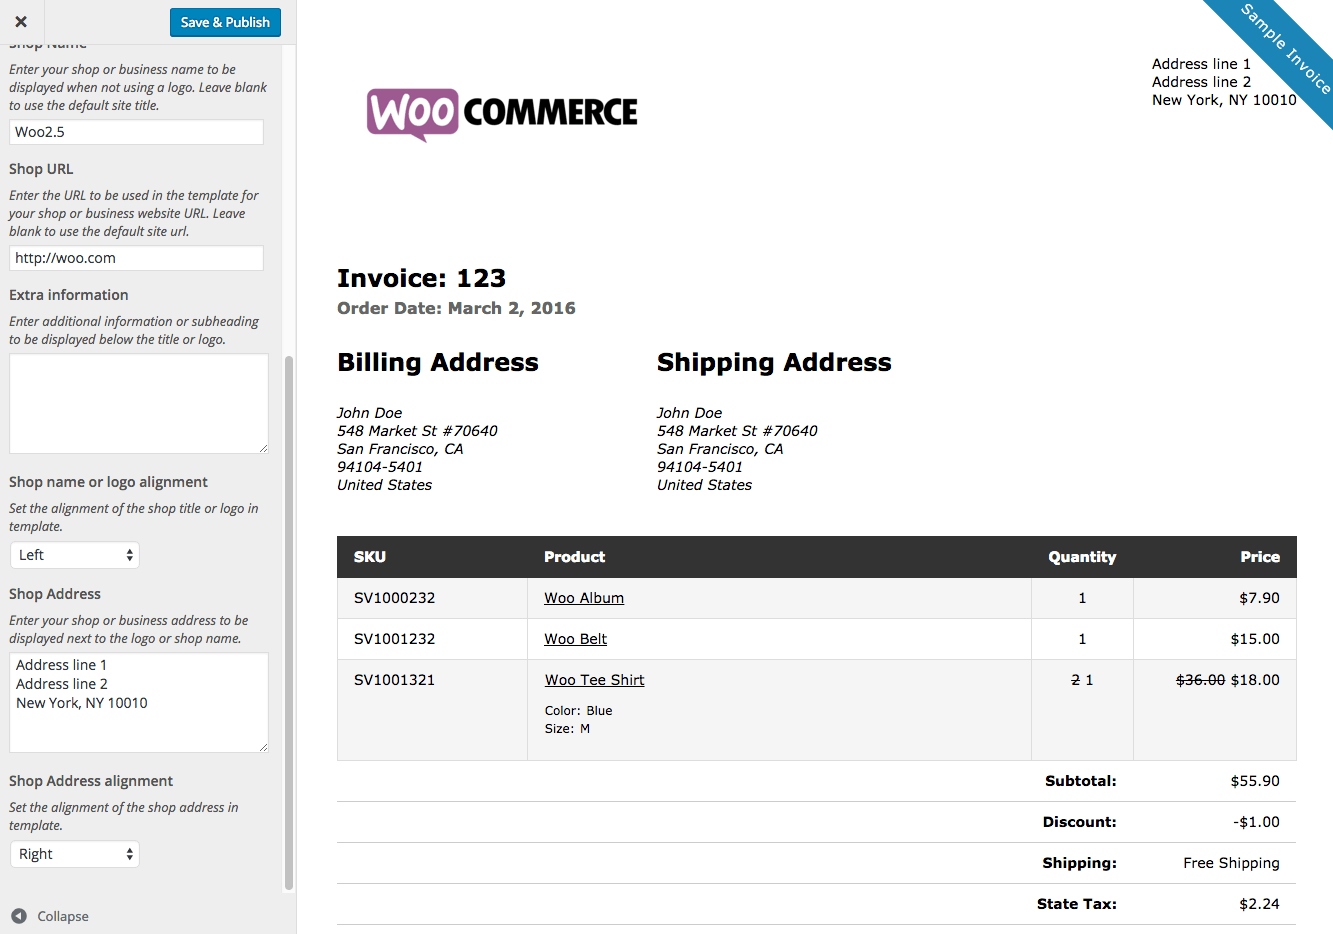 Modaoxus  Inspiring Woocommerce Print Invoices Amp Packing Lists  Woocommerce Docs With Fascinating Woocommerce Print Invoices  Packing Lists Customizer With Enchanting Invoice Database Design Also Invoice Books Personalised In Addition Software For Invoicing And Invoice Forma As Well As Generic Invoice Template Free Additionally Sample Invoice For Consulting From Docswoocommercecom With Modaoxus  Fascinating Woocommerce Print Invoices Amp Packing Lists  Woocommerce Docs With Enchanting Woocommerce Print Invoices  Packing Lists Customizer And Inspiring Invoice Database Design Also Invoice Books Personalised In Addition Software For Invoicing From Docswoocommercecom